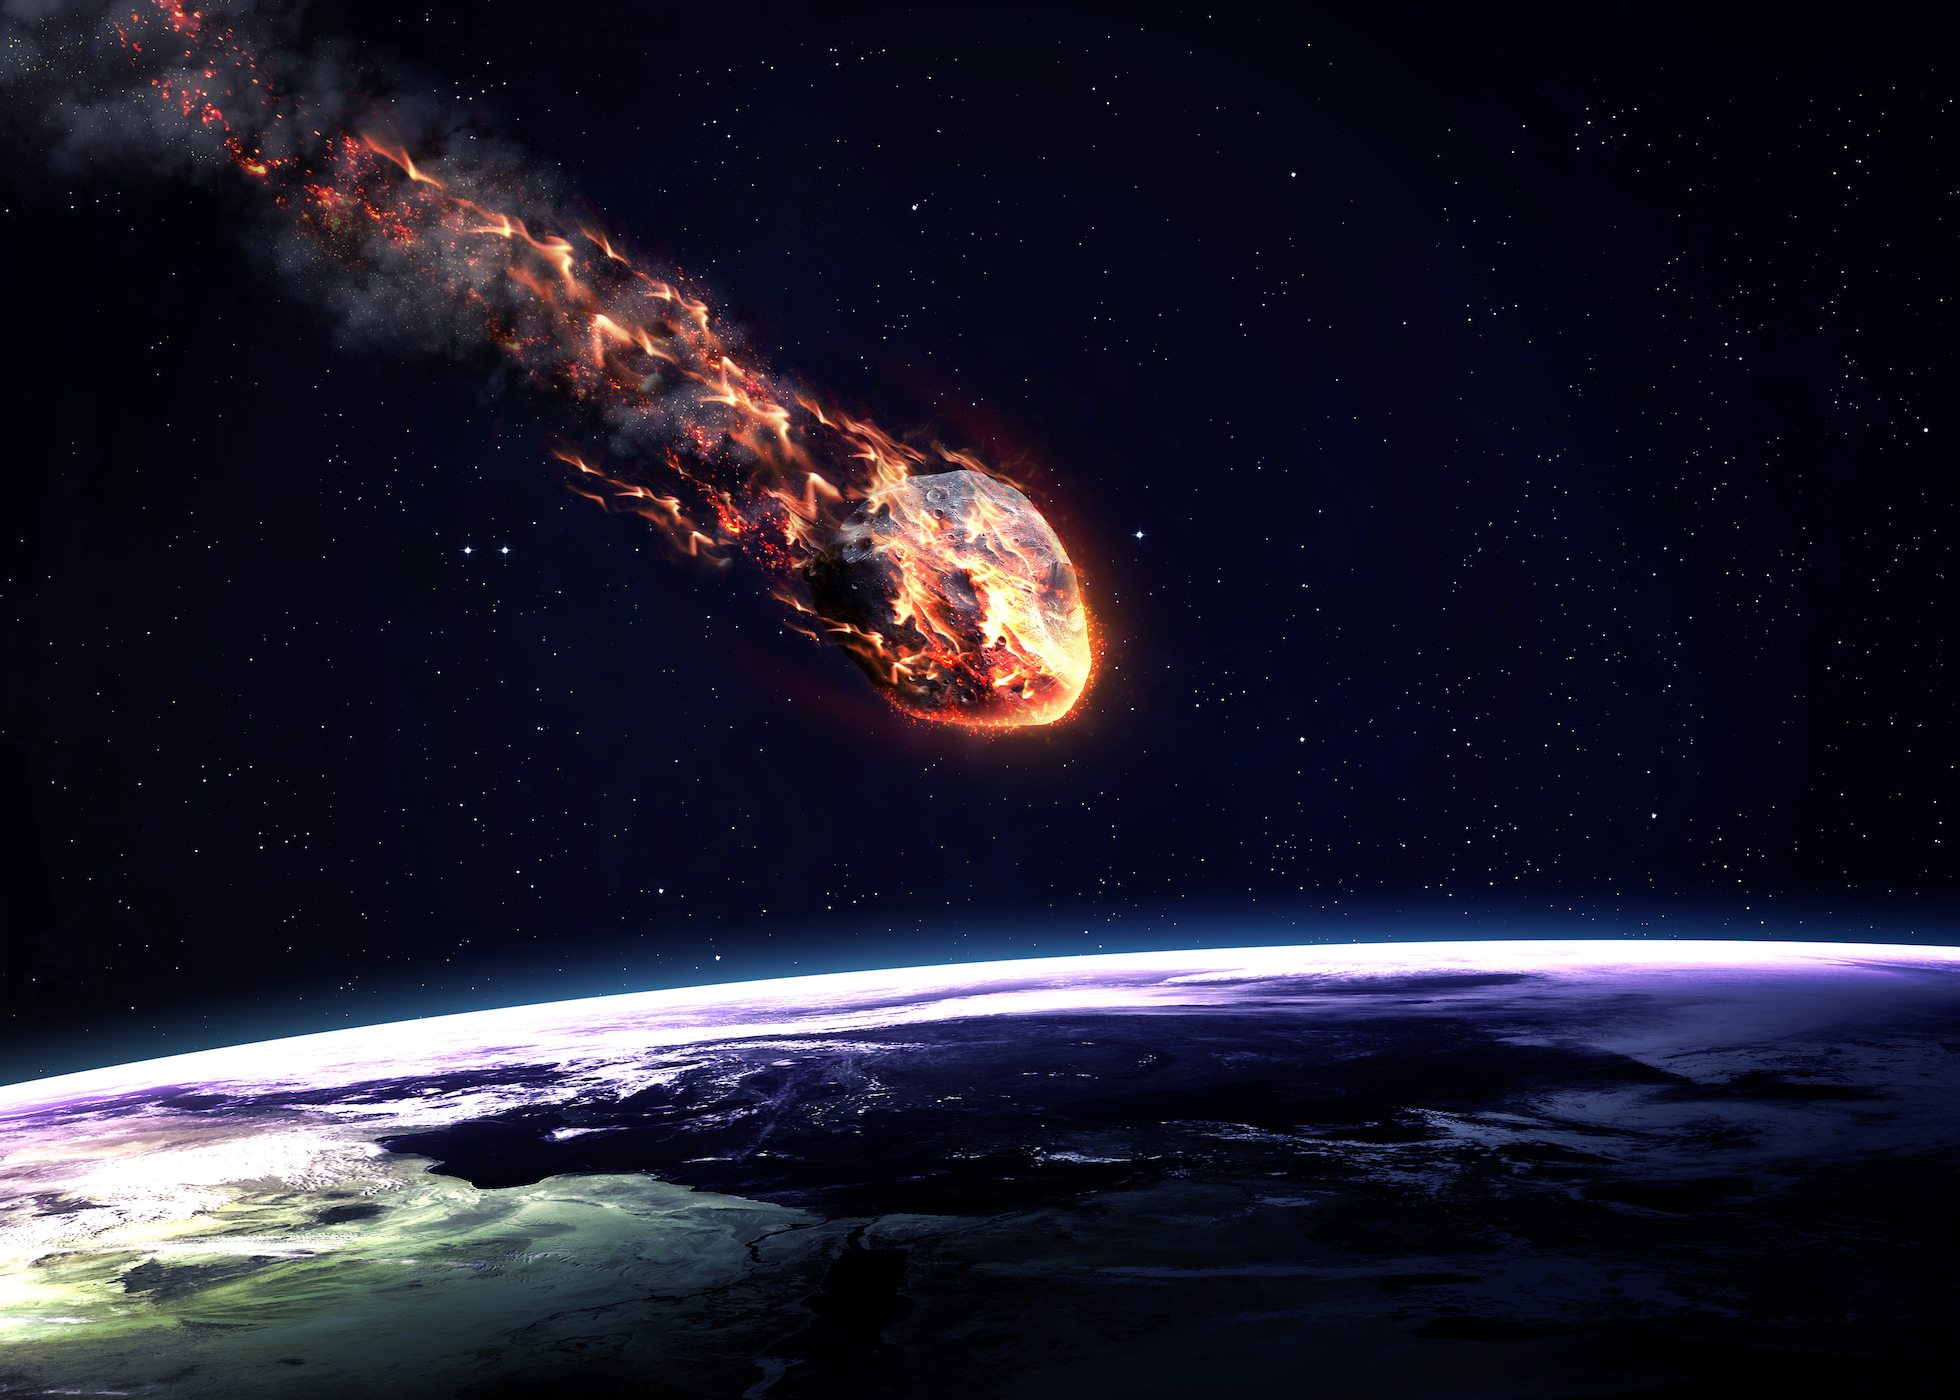 Researchers have dated a comet fragment strike that killed thousands and triggered a mini ice age to the year 10,950 BC.